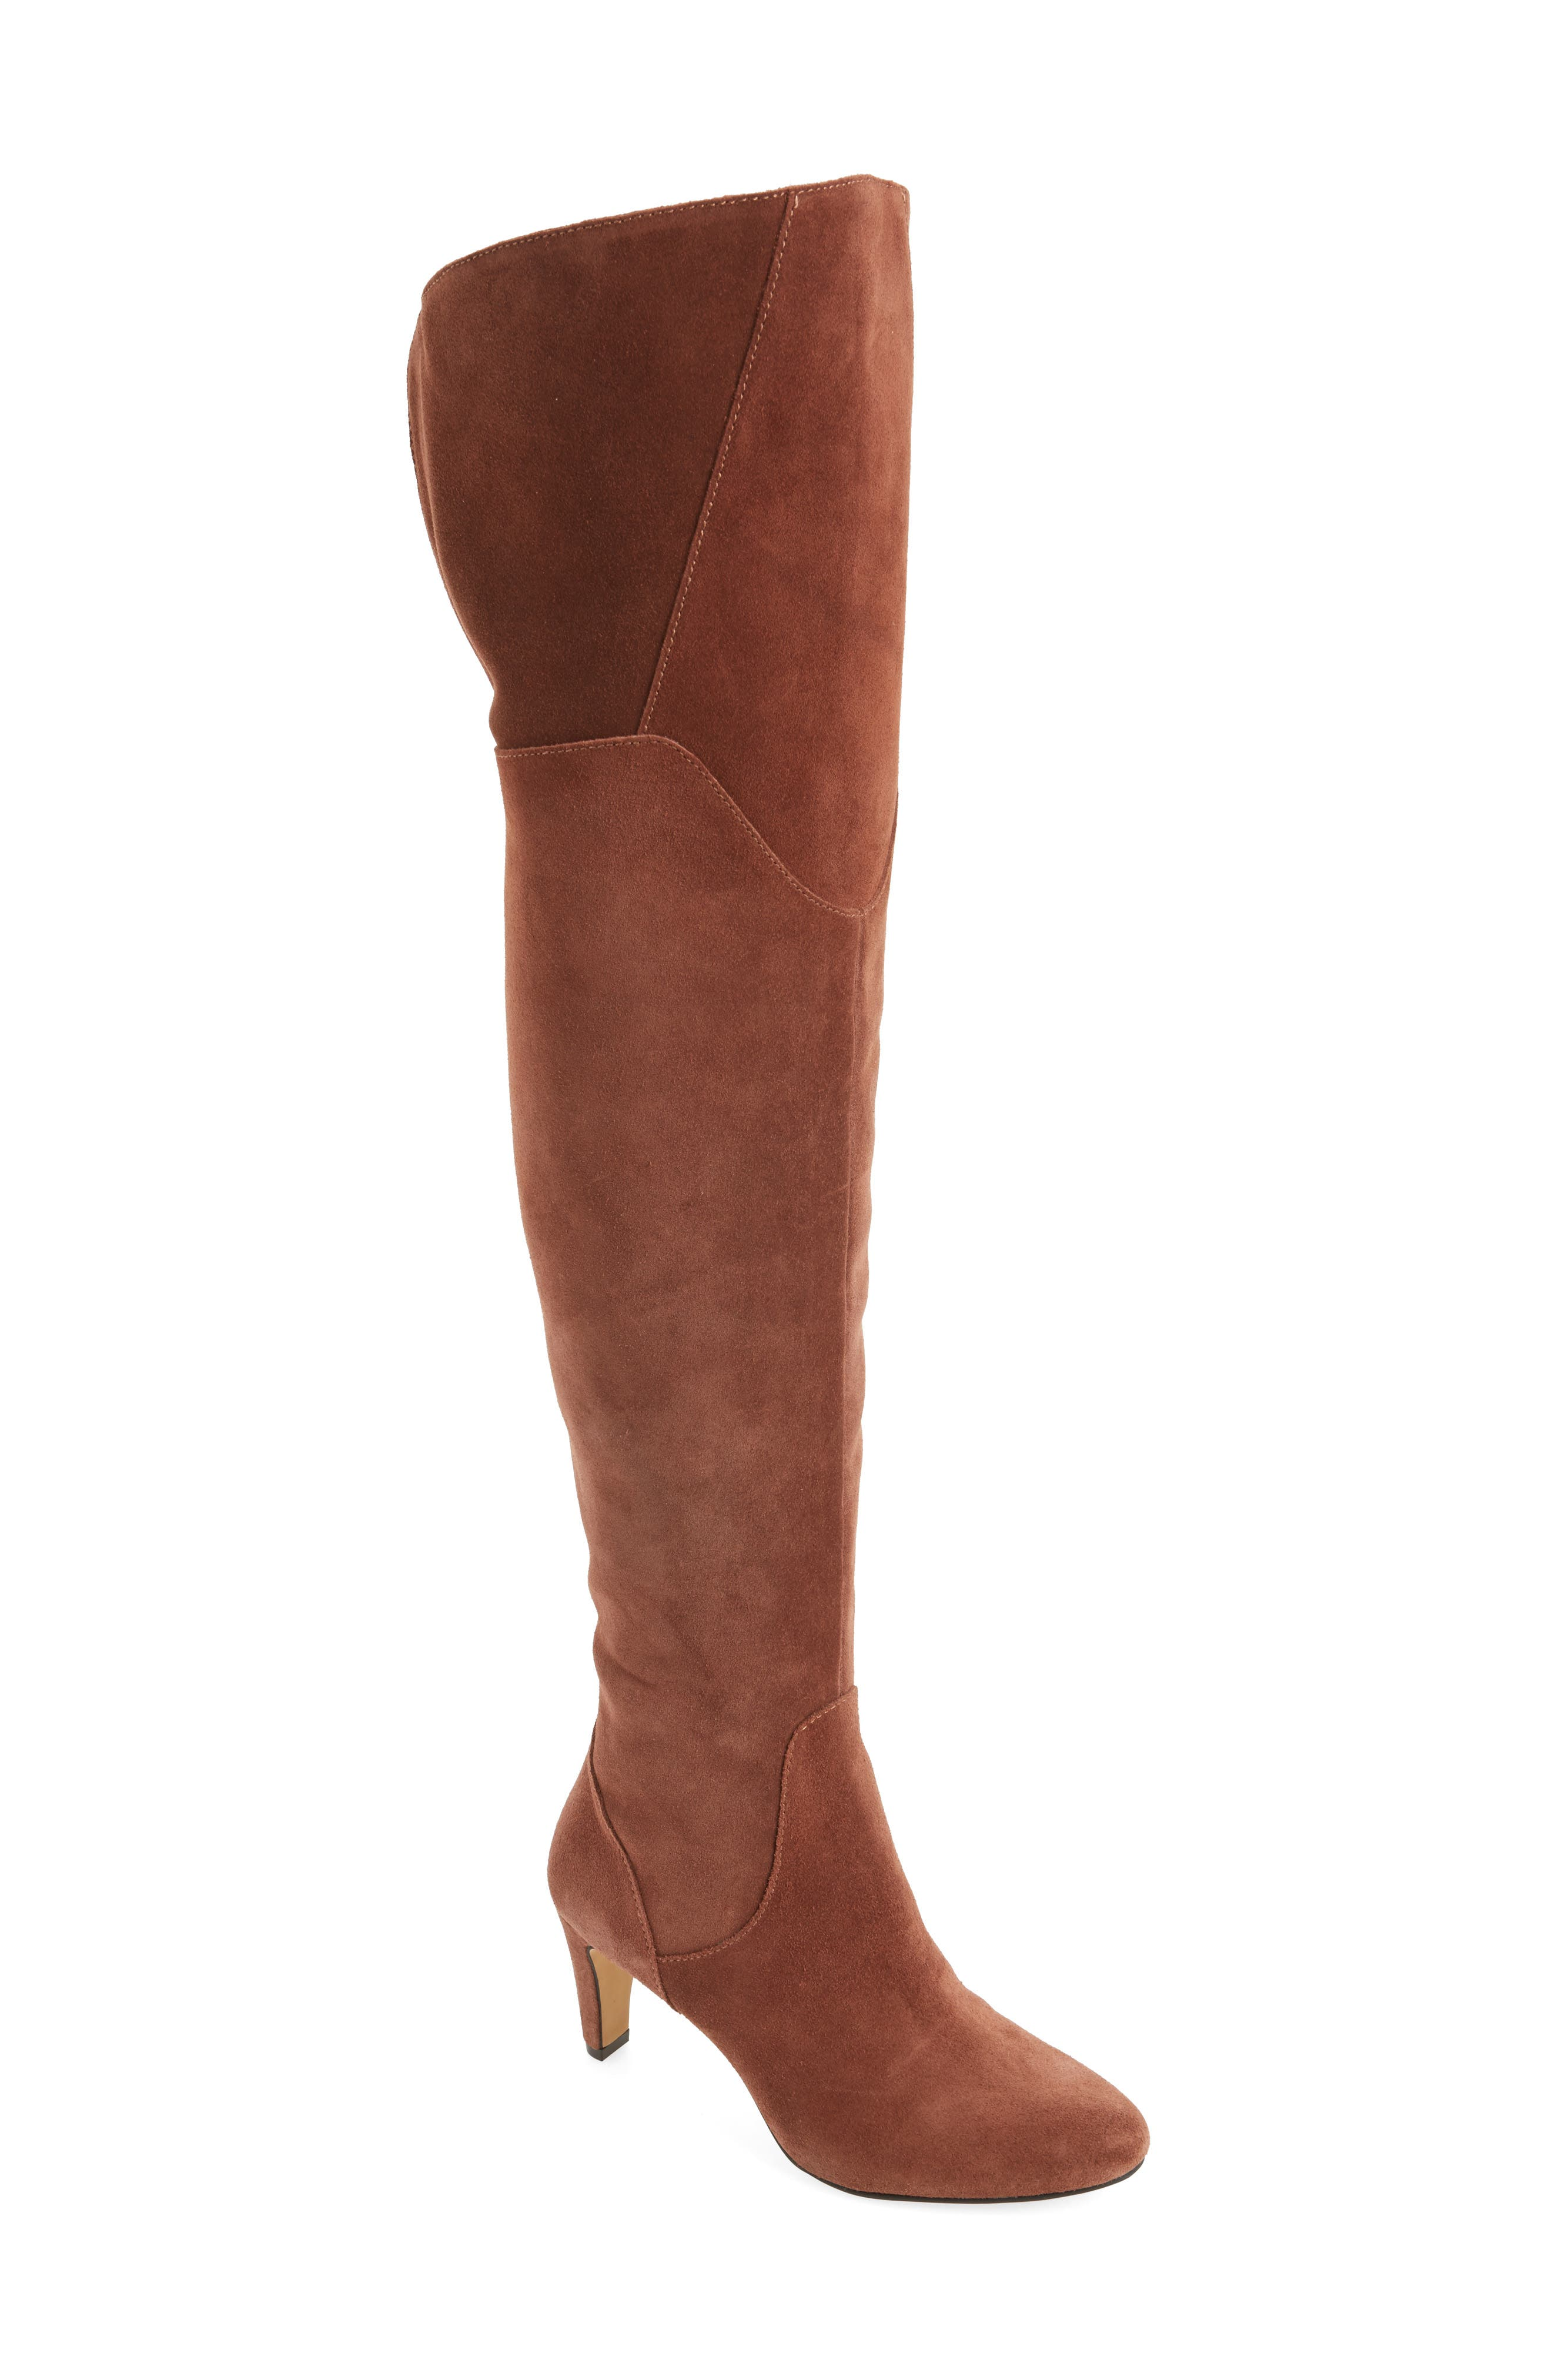 Armaceli Over the Knee Boot,                             Main thumbnail 2, color,